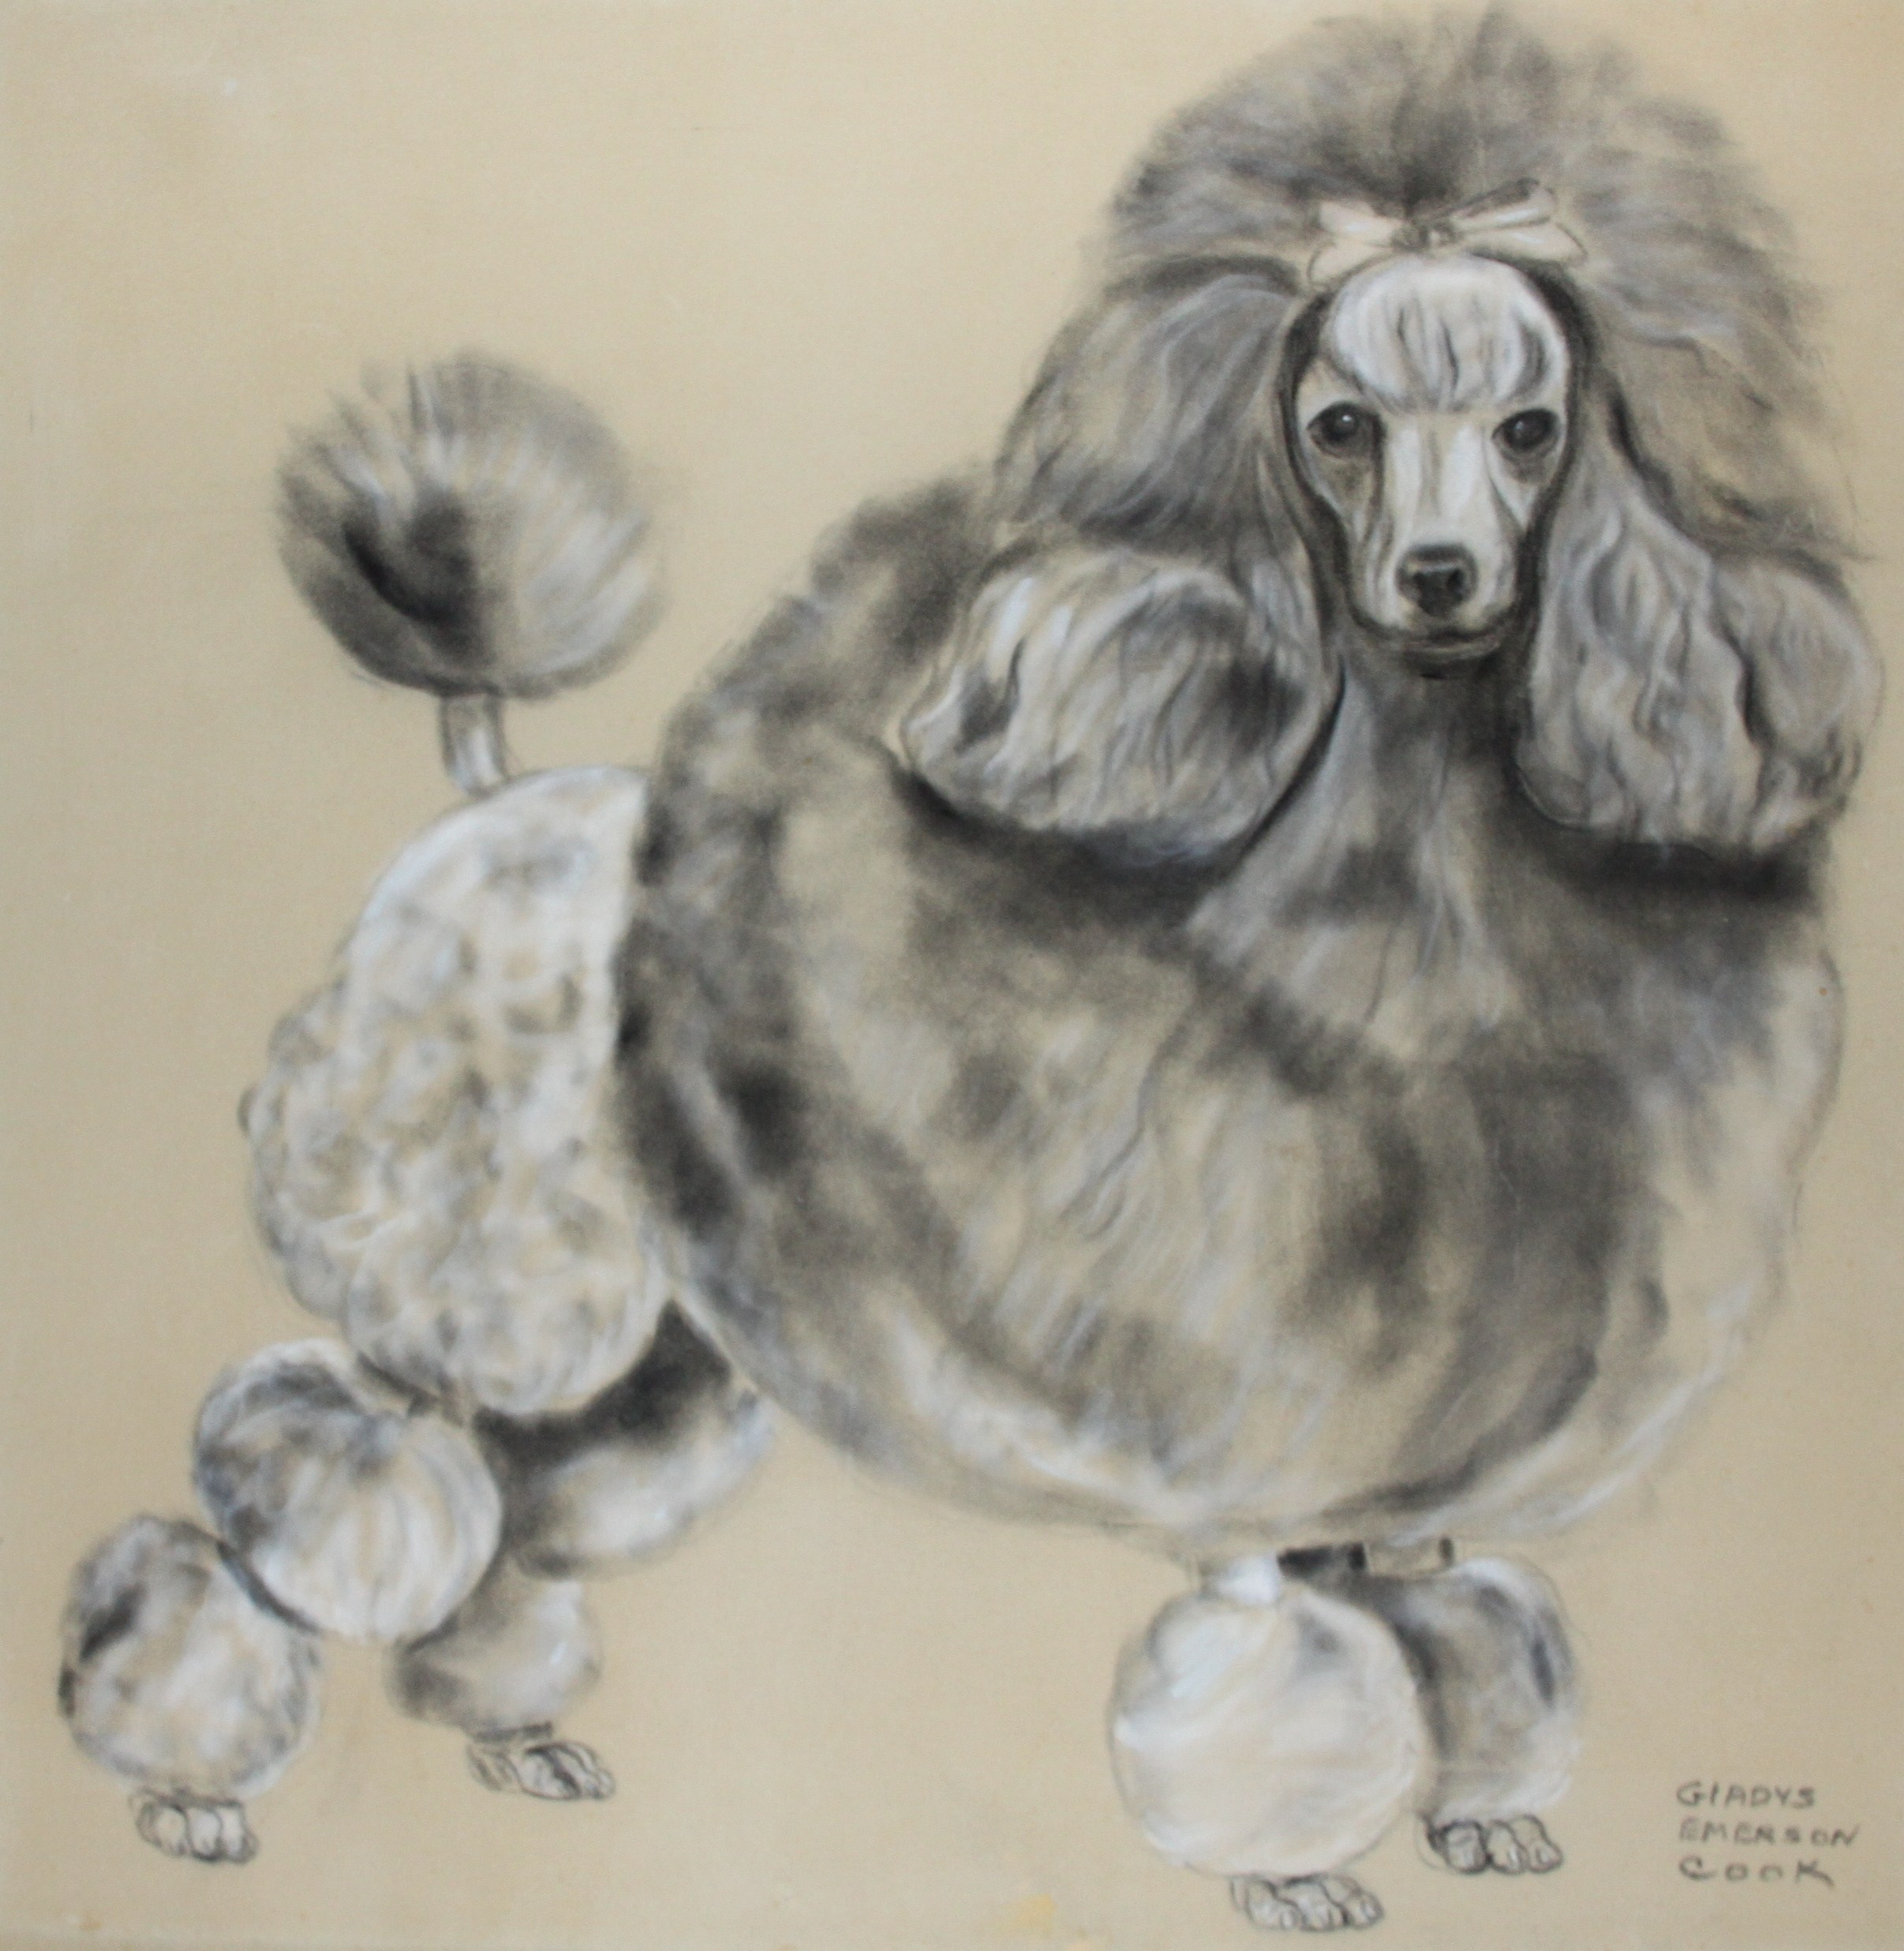 Click to see full size: A Standard Poodle by Gladys Emerson Cook (American, 1899-1976)